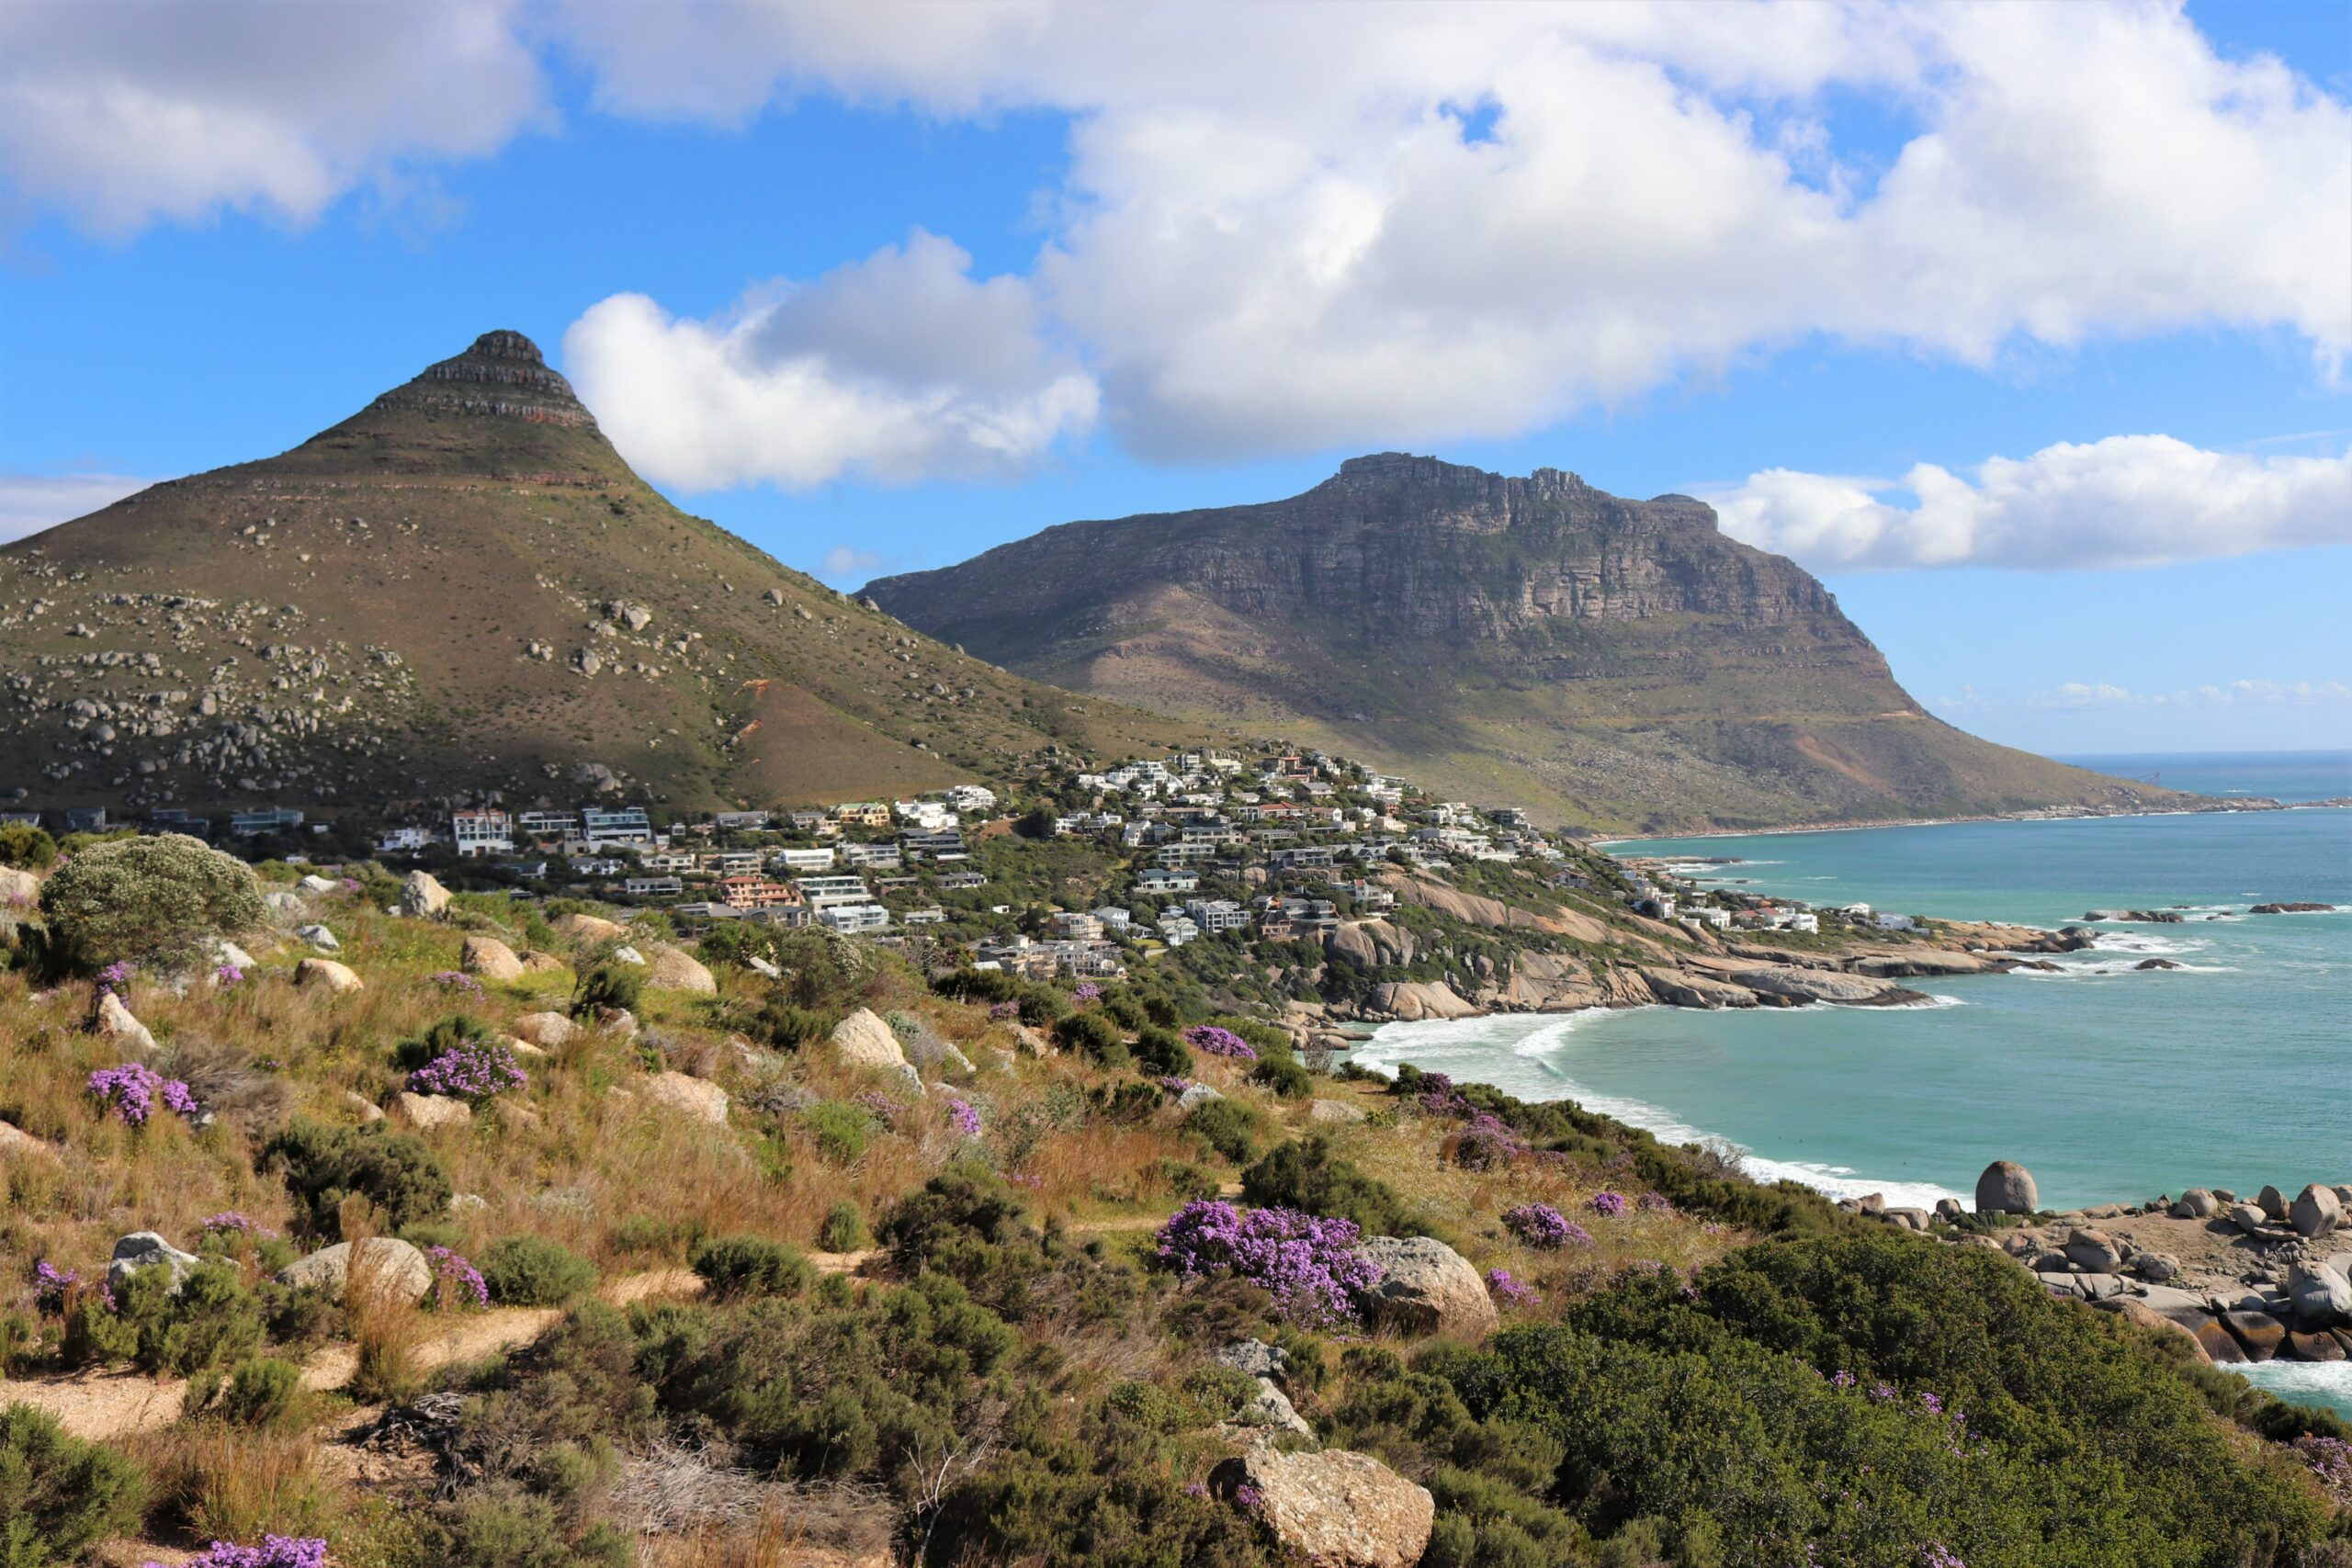 beautiful sunny day in cape town taken from a scenic hike overlooking the mountains and water